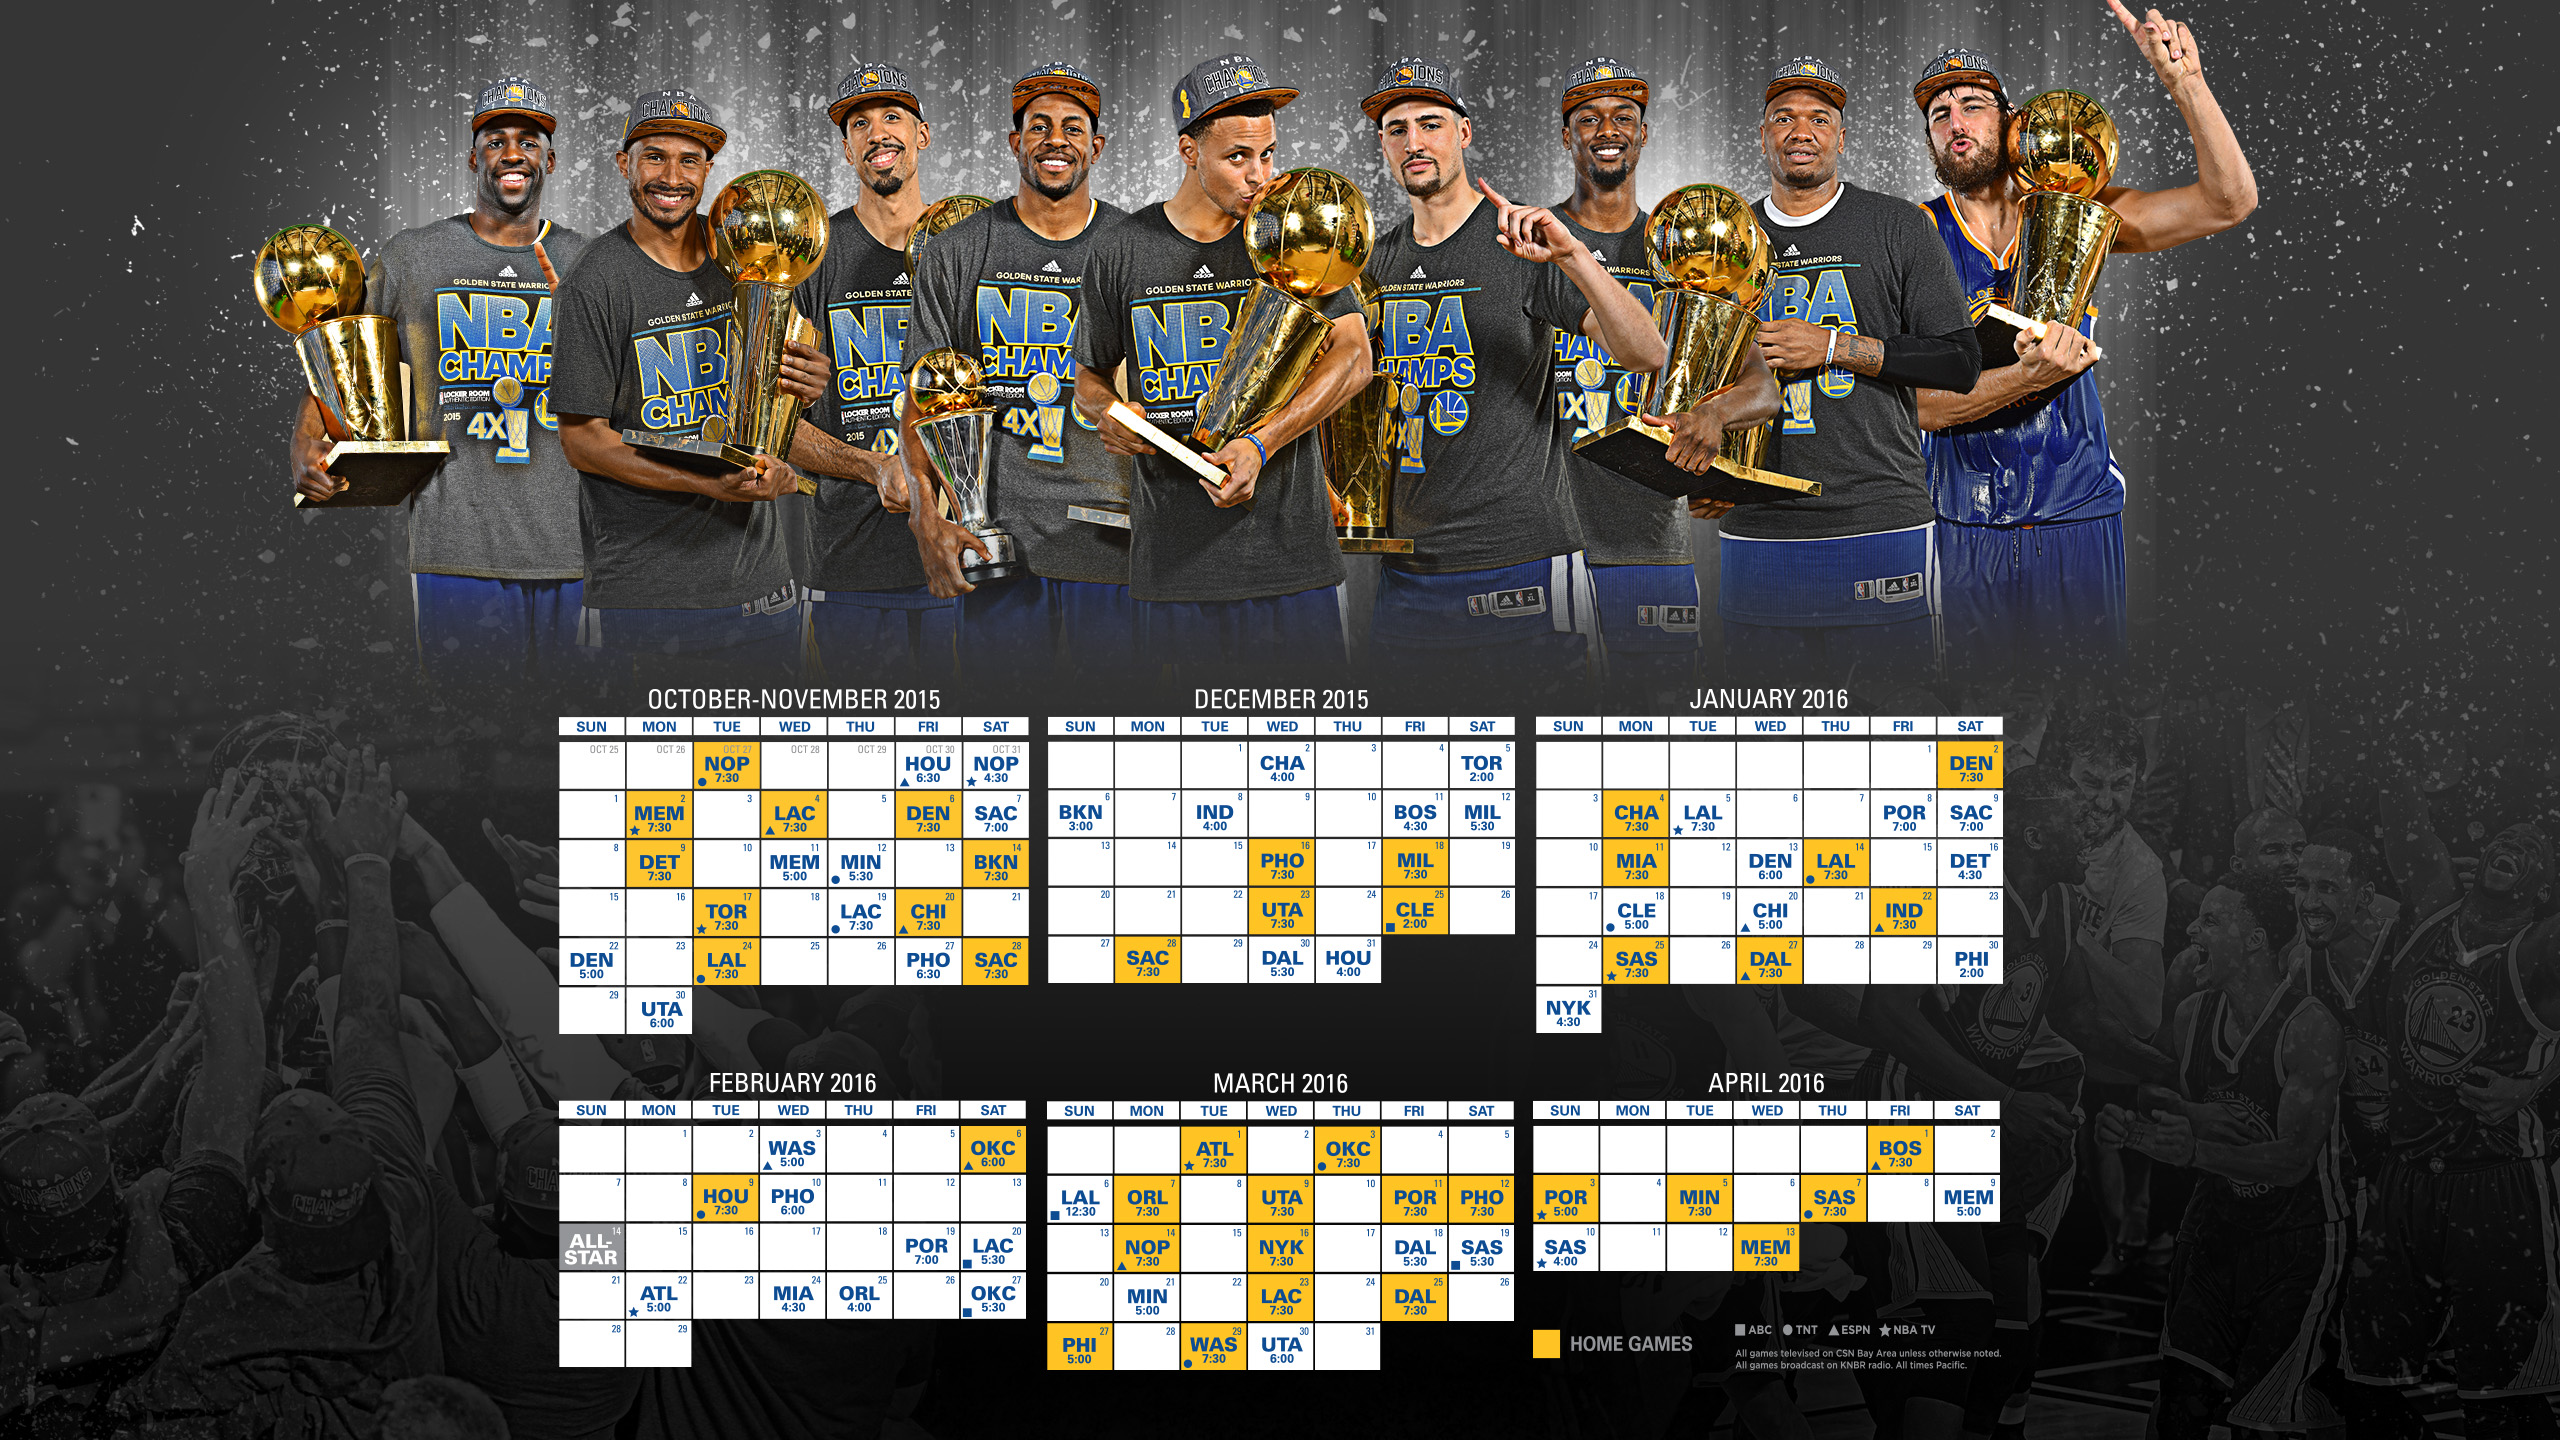 nba champion golden state warriors announce schedule for upcoming